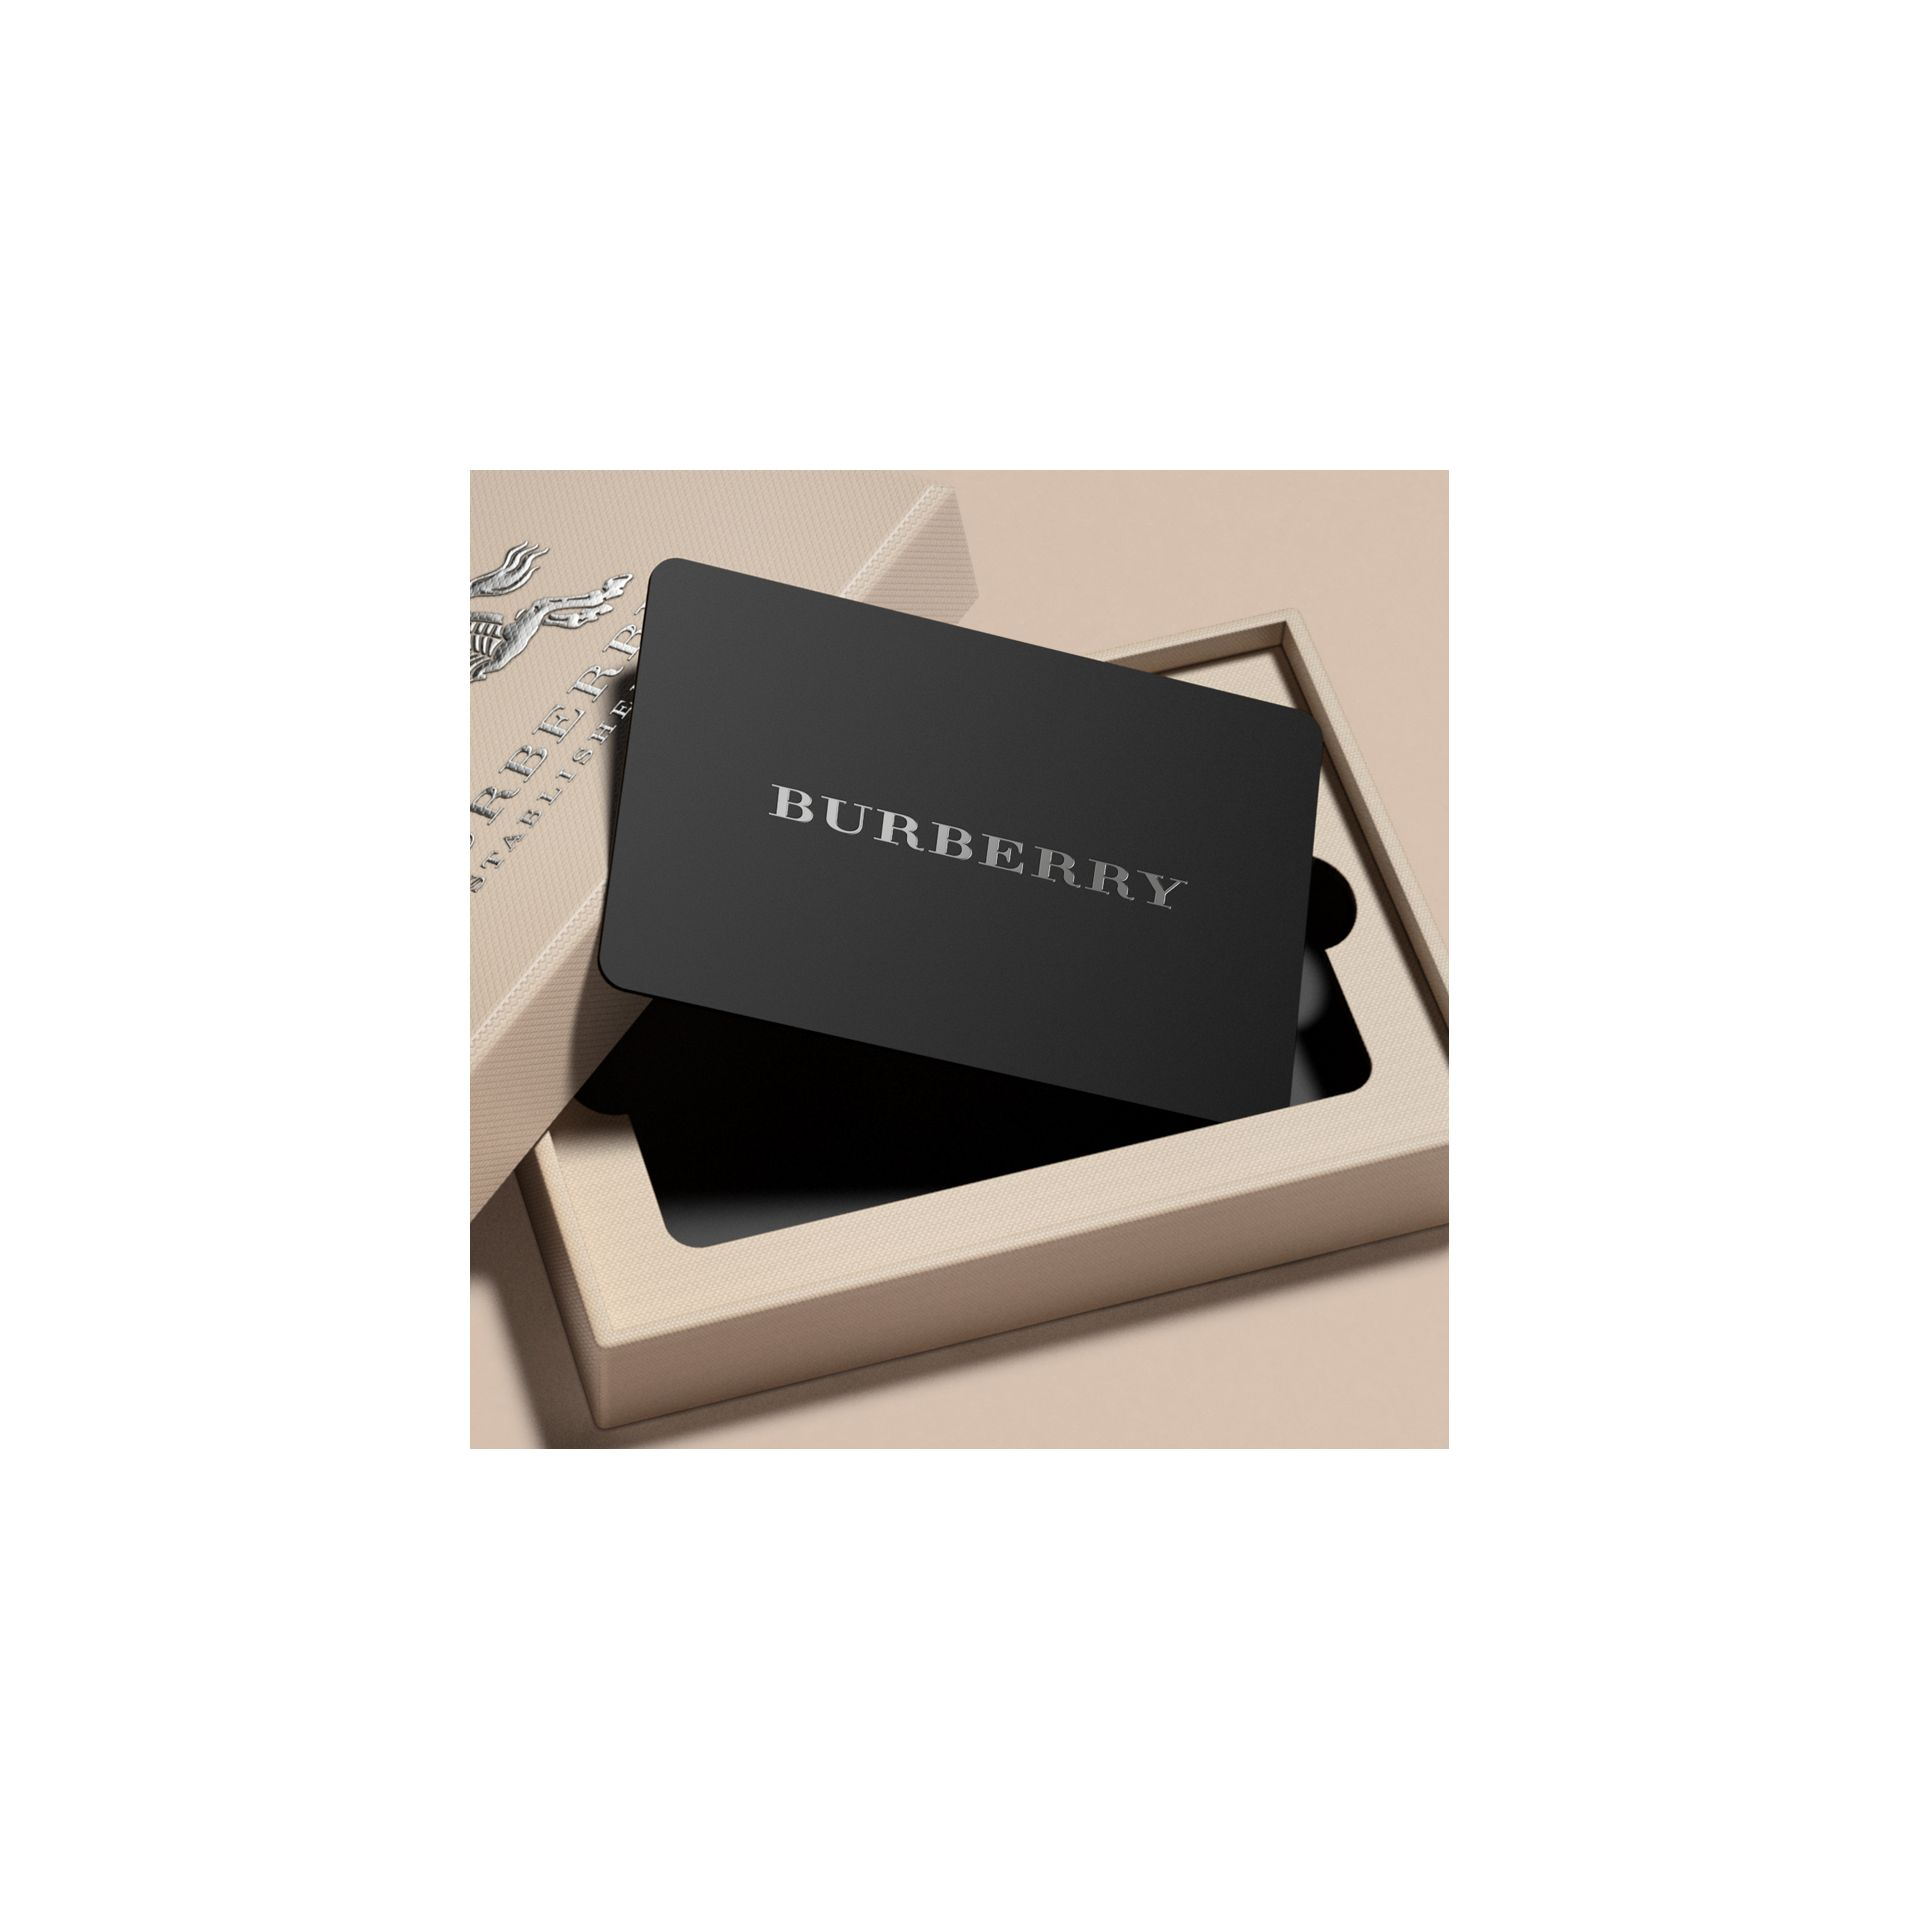 Burberry Gift Card | Burberry - gallery image 2